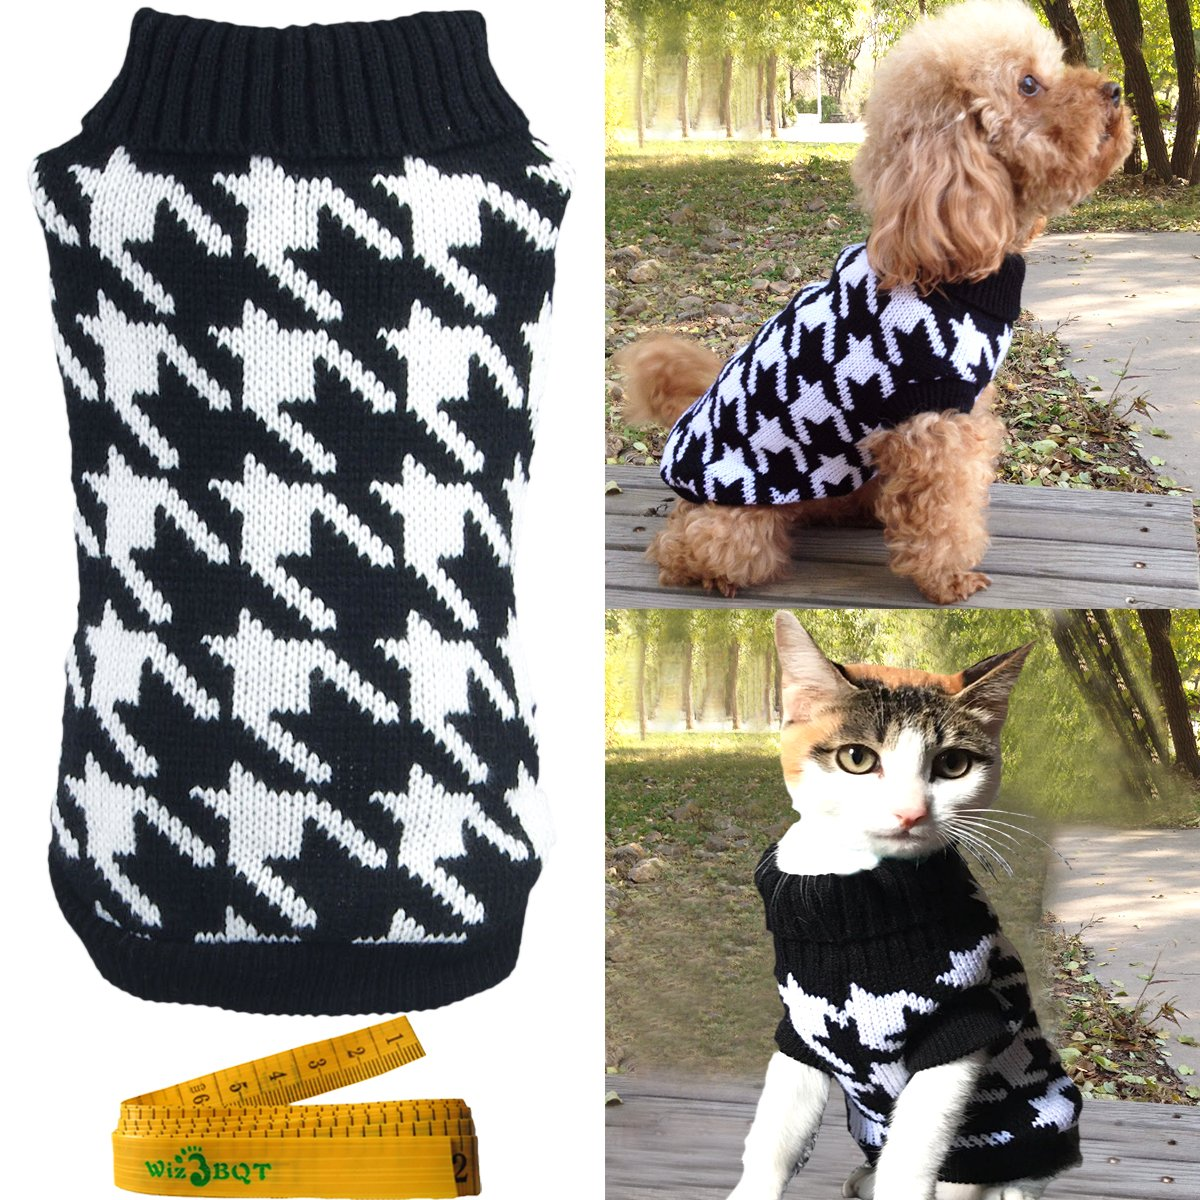 Pet Sweater Knitwear for Dogs & Cats Elegant Warm Knitted Turtleneck Houndstooth